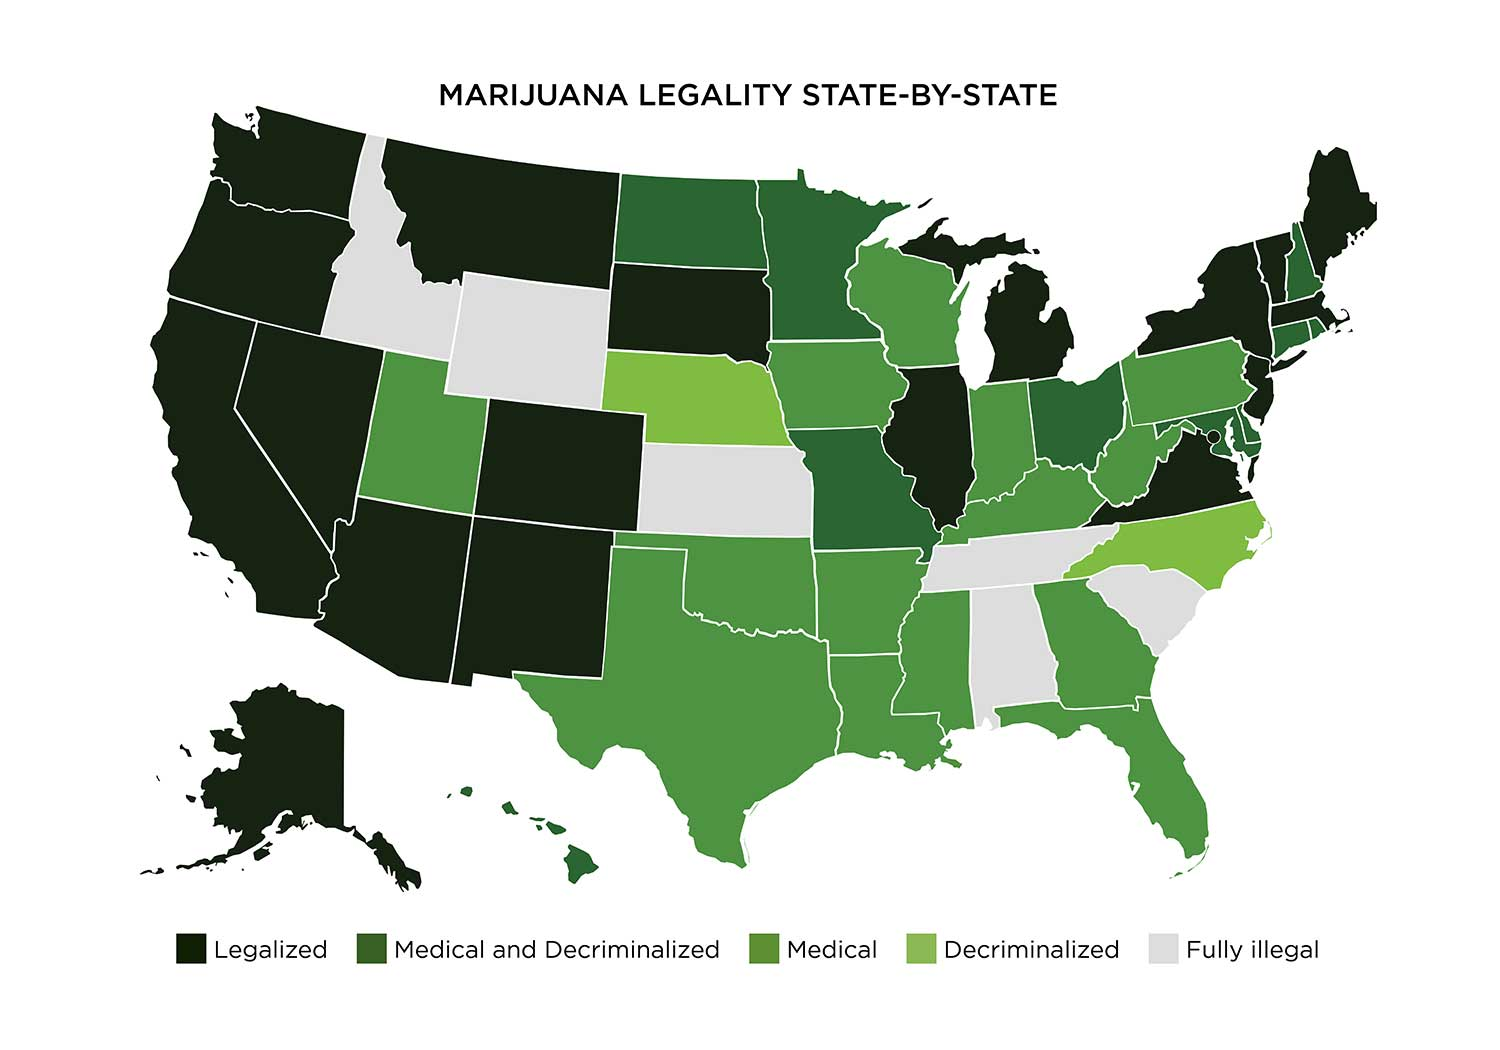 Recreational cannabis is currently legal in 15 states. Cannabis is only fully illegal in a total of six states; all others have decriminalized it, allow it for medical use, or have legalized it entirely. Source: Disa Global Solutions, Inc.  Data as of January 2021.